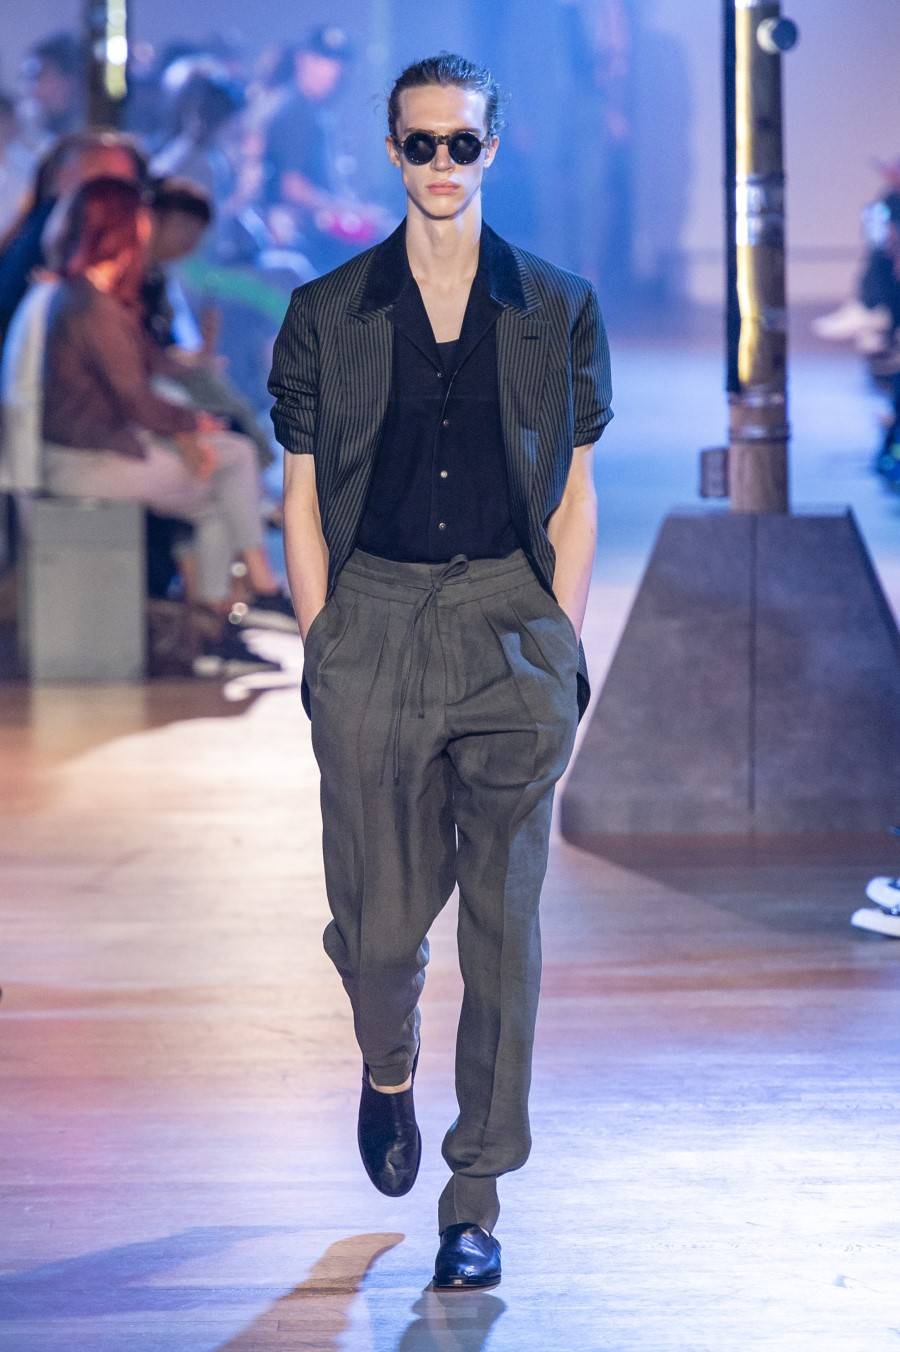 Cerruti 1881 Spring/Summer 2019 - Paris Fashion Week